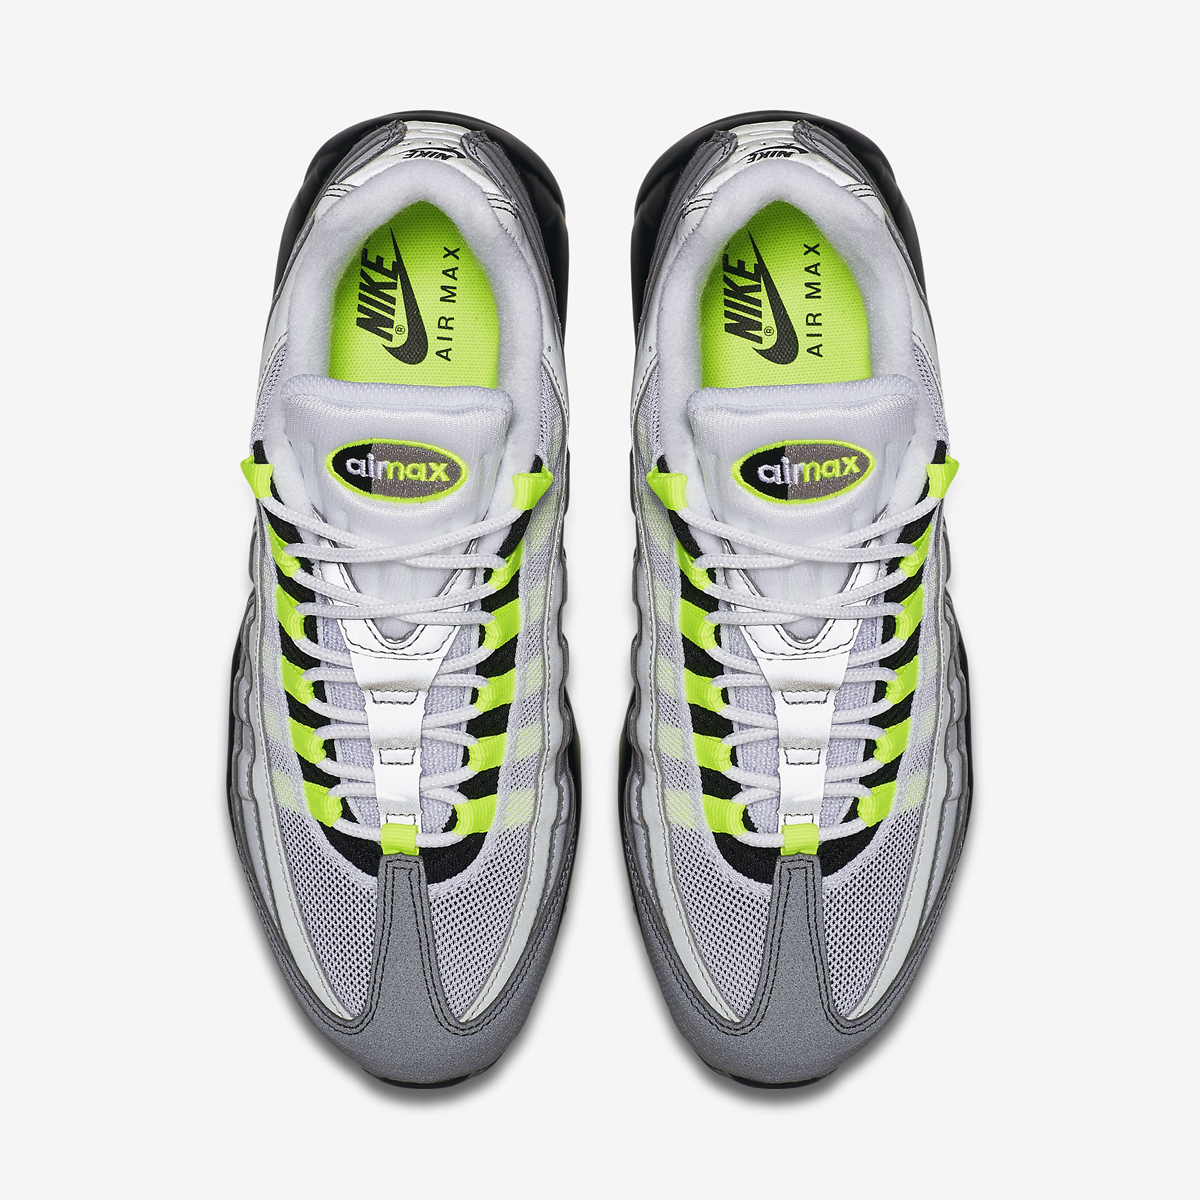 competitive price f13a0 98472 Nike s Fully Reflective  Neon  Air Max 95 Just Released   Sole Collector